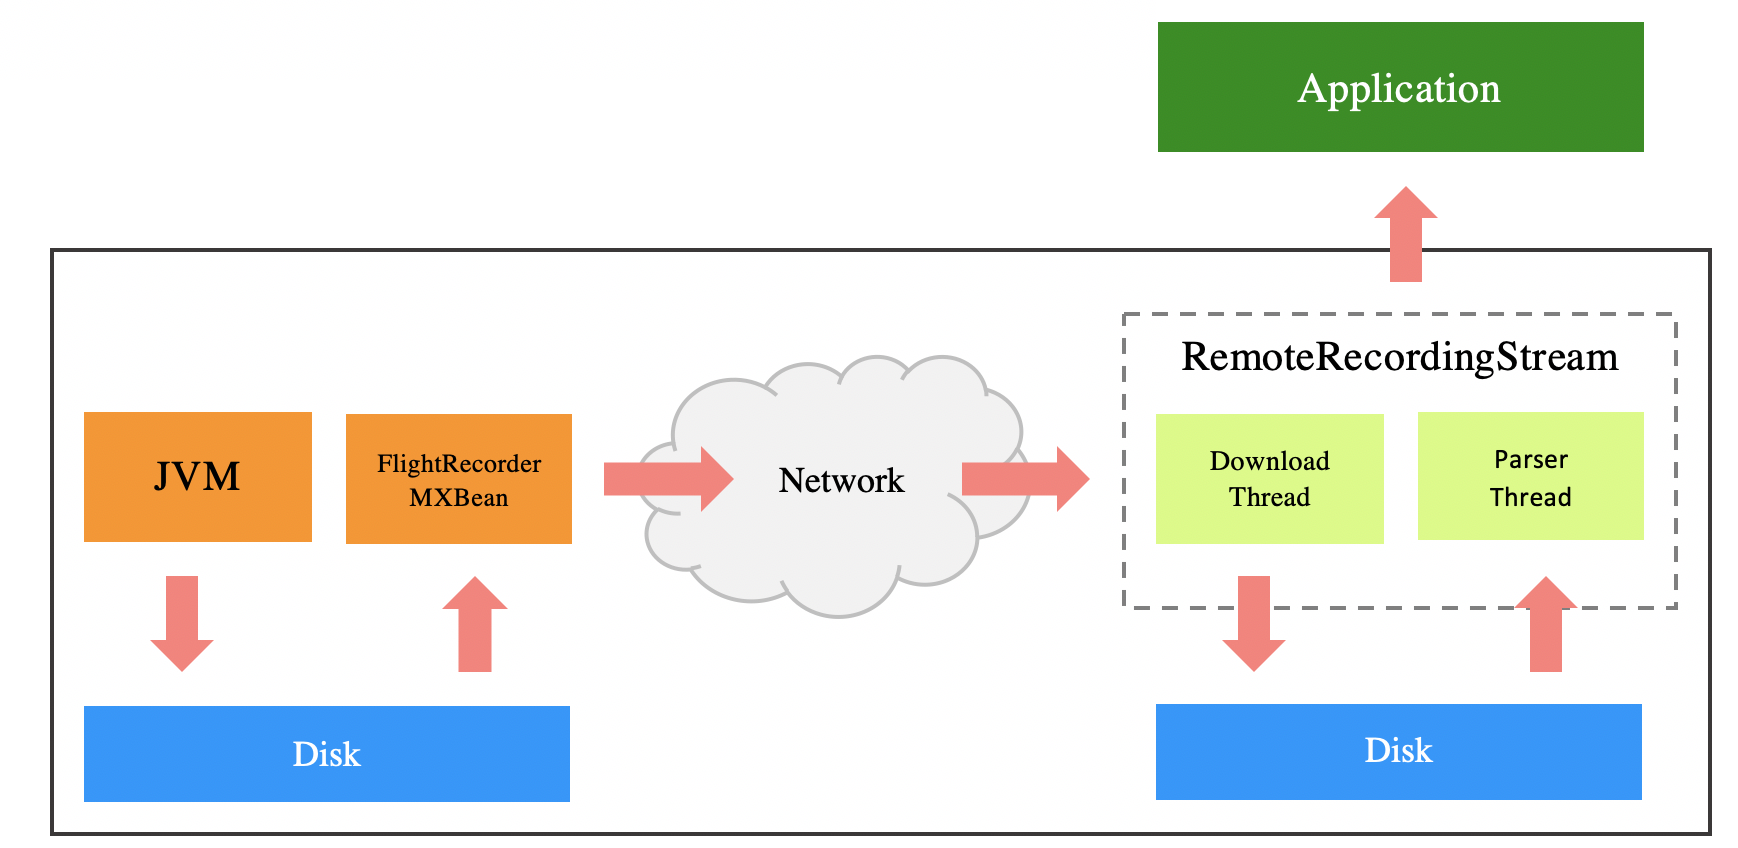 Remote Streaming Overview